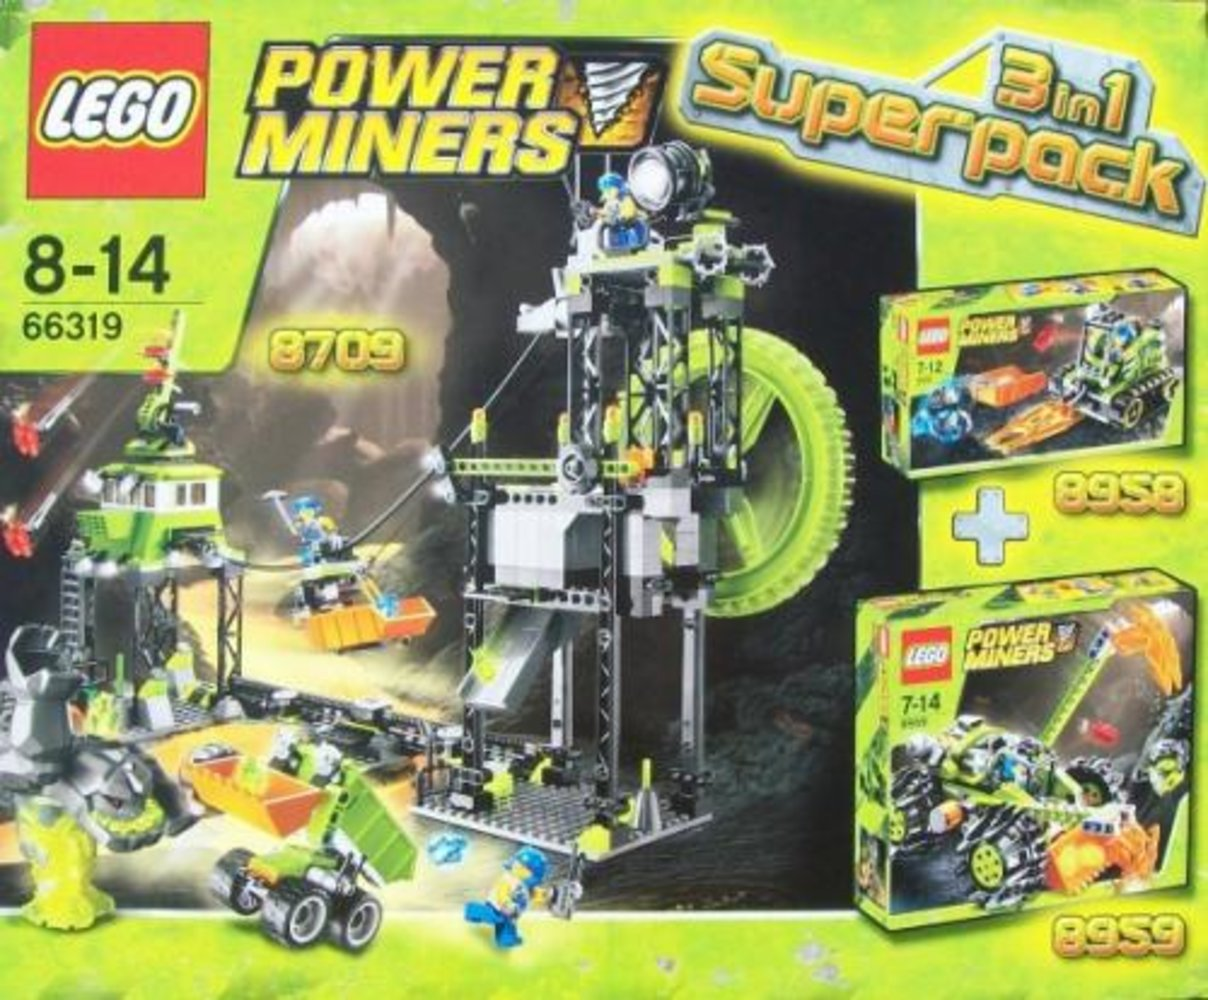 Power Miners 3 in 1 Superpack